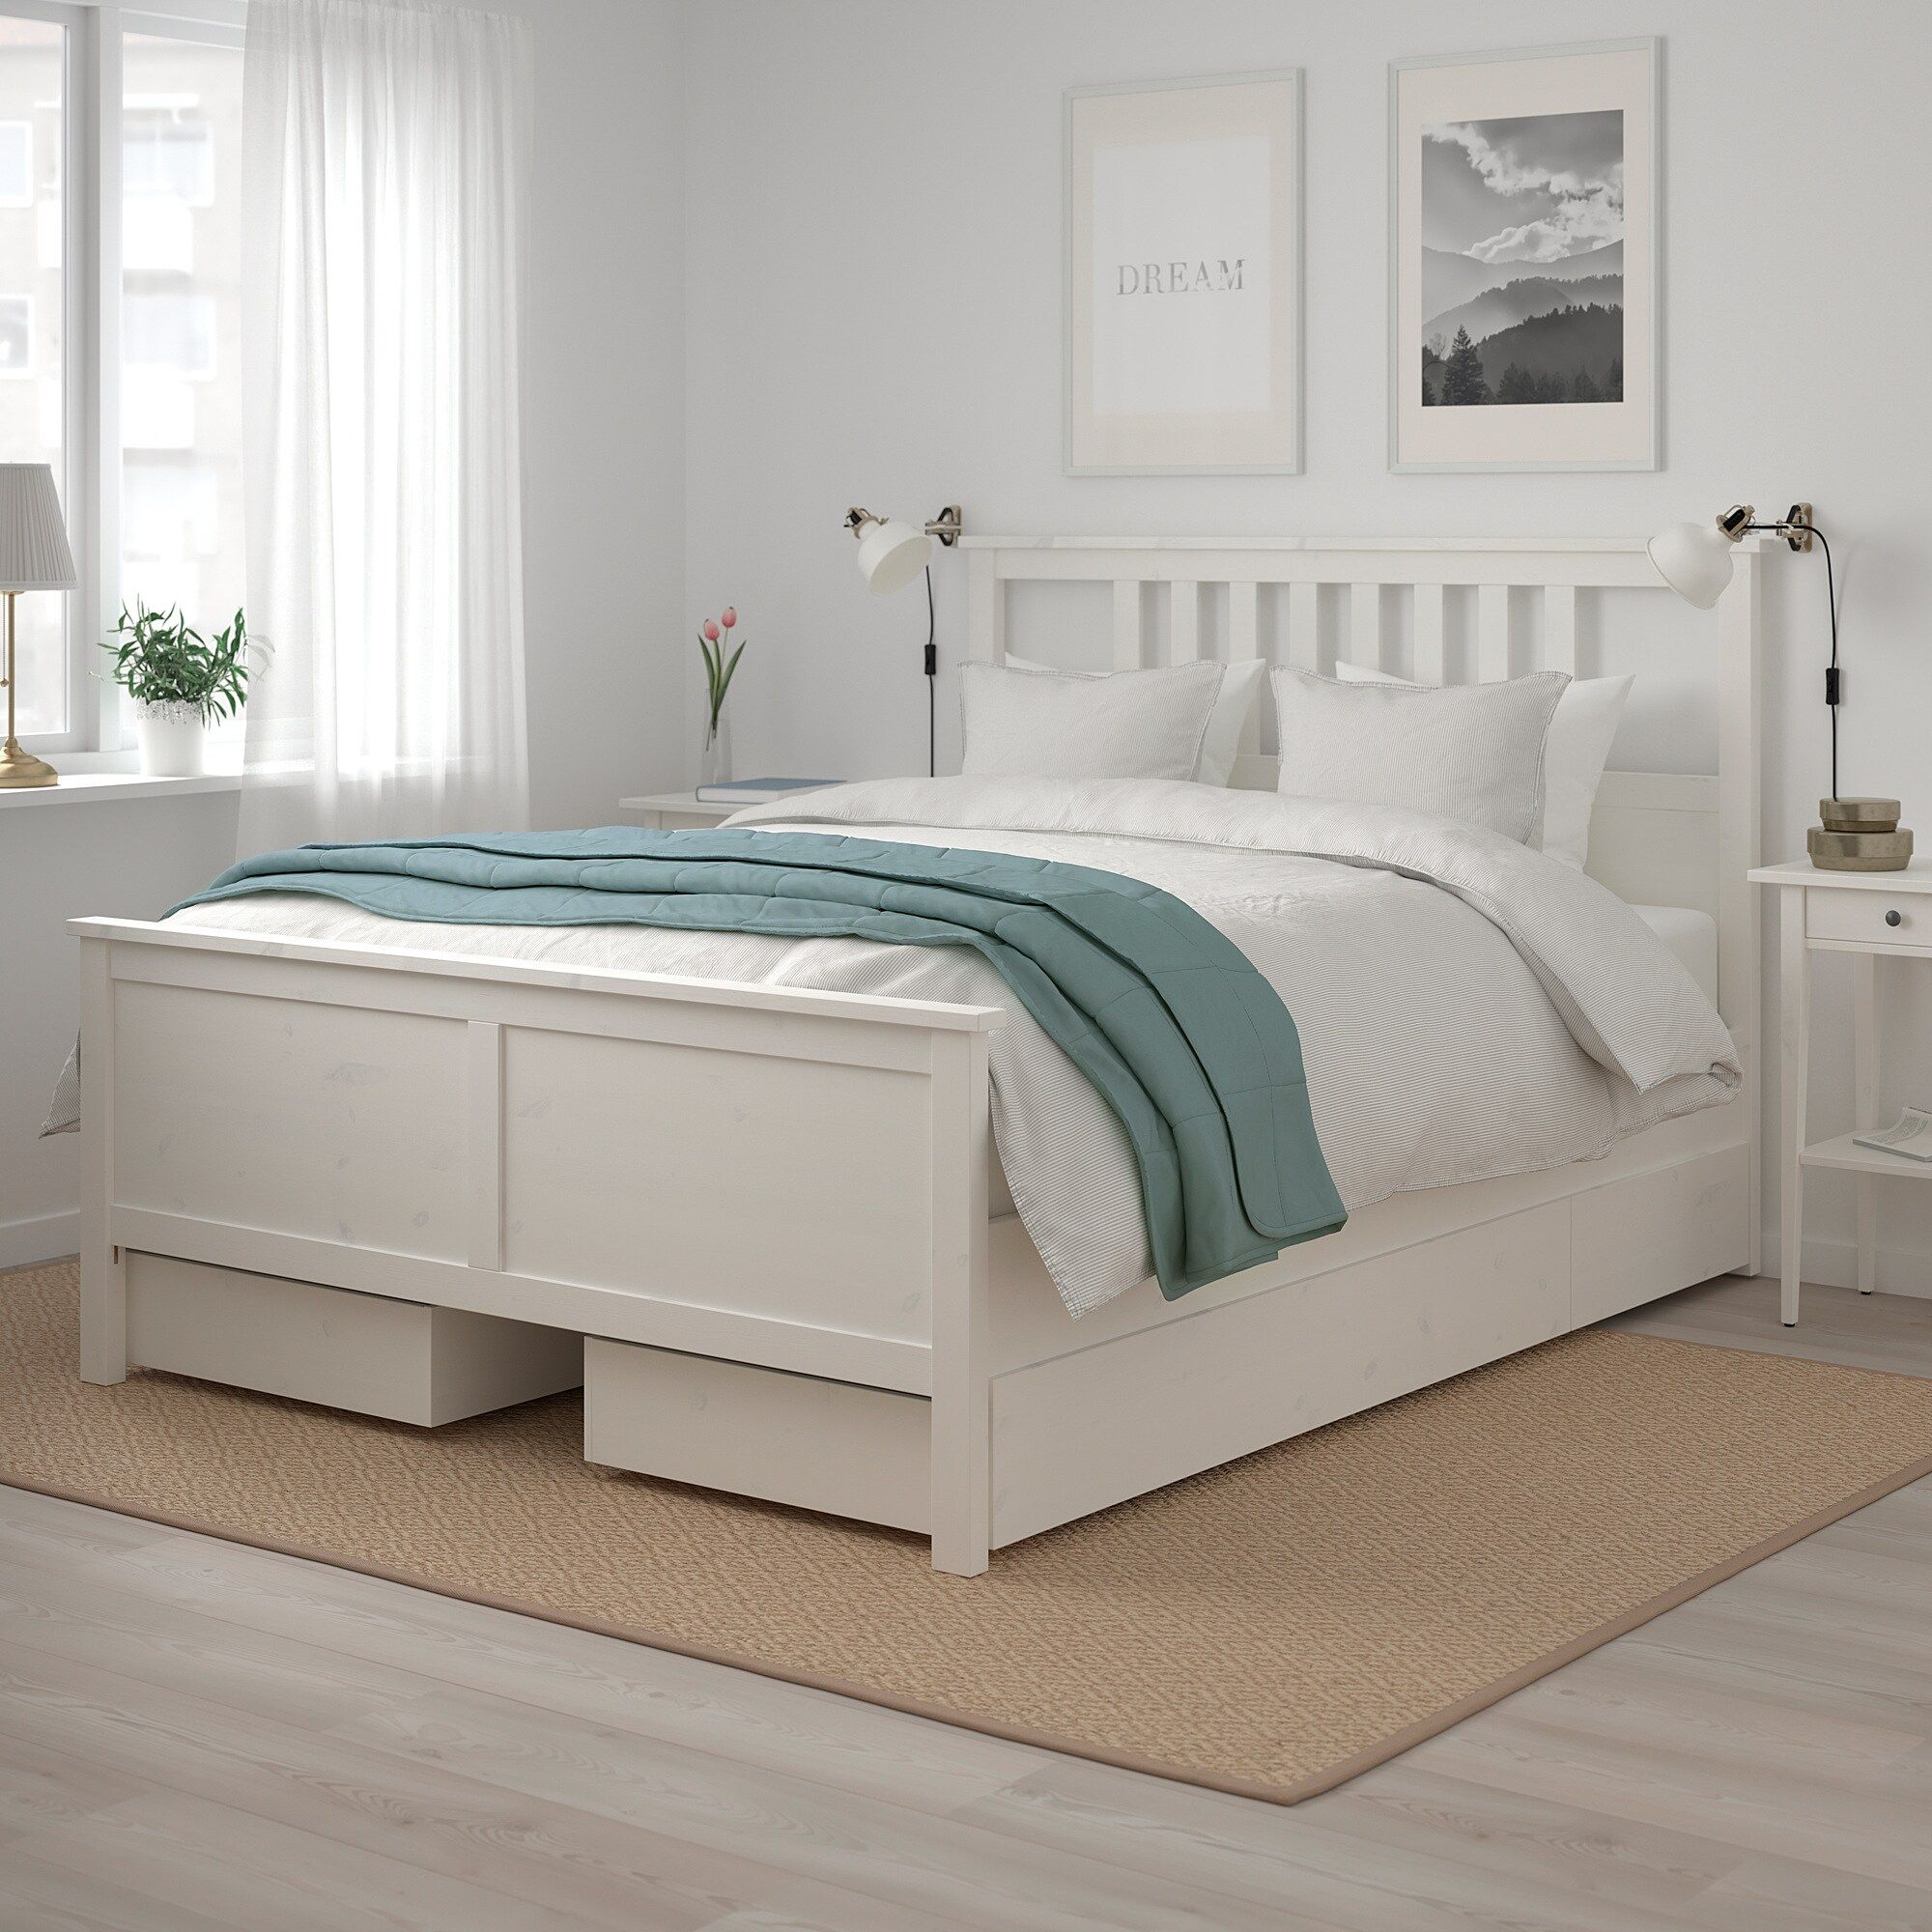 HEMNES white stain, Luröy, Bed with 4 storage boxes